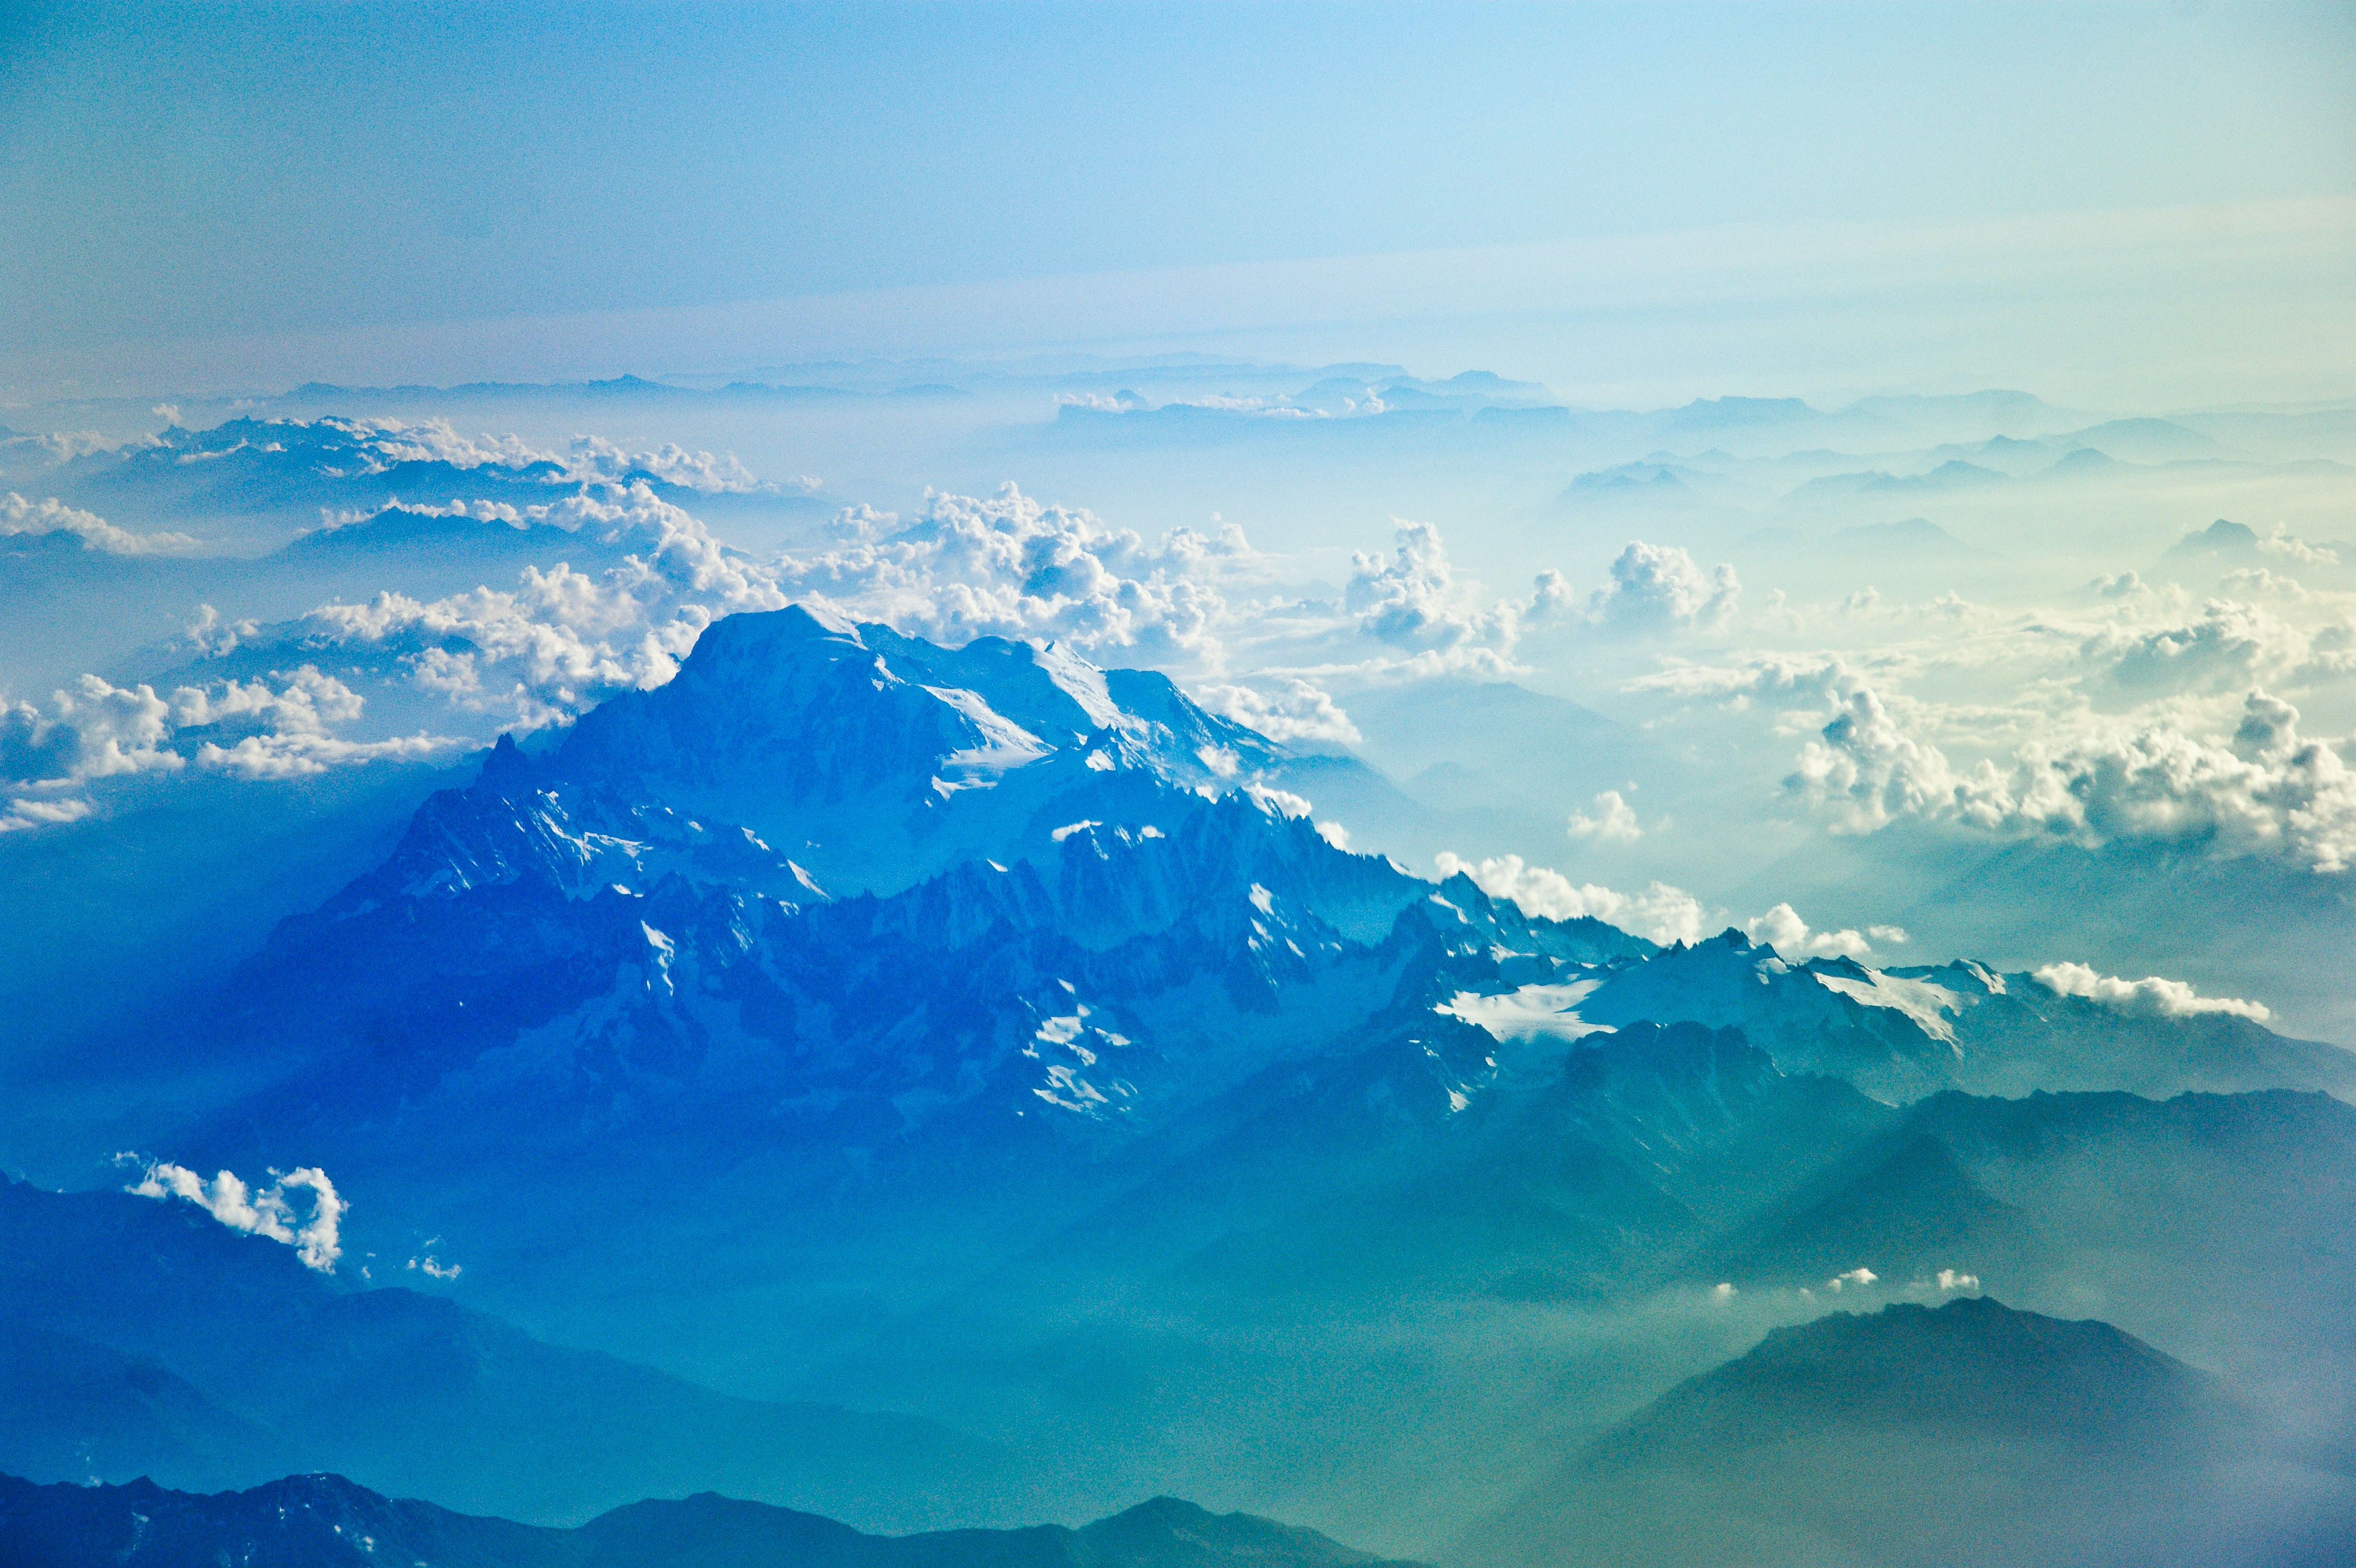 A bird's-eye view on a snow-capped mountain range with clouds obscuring the horizon